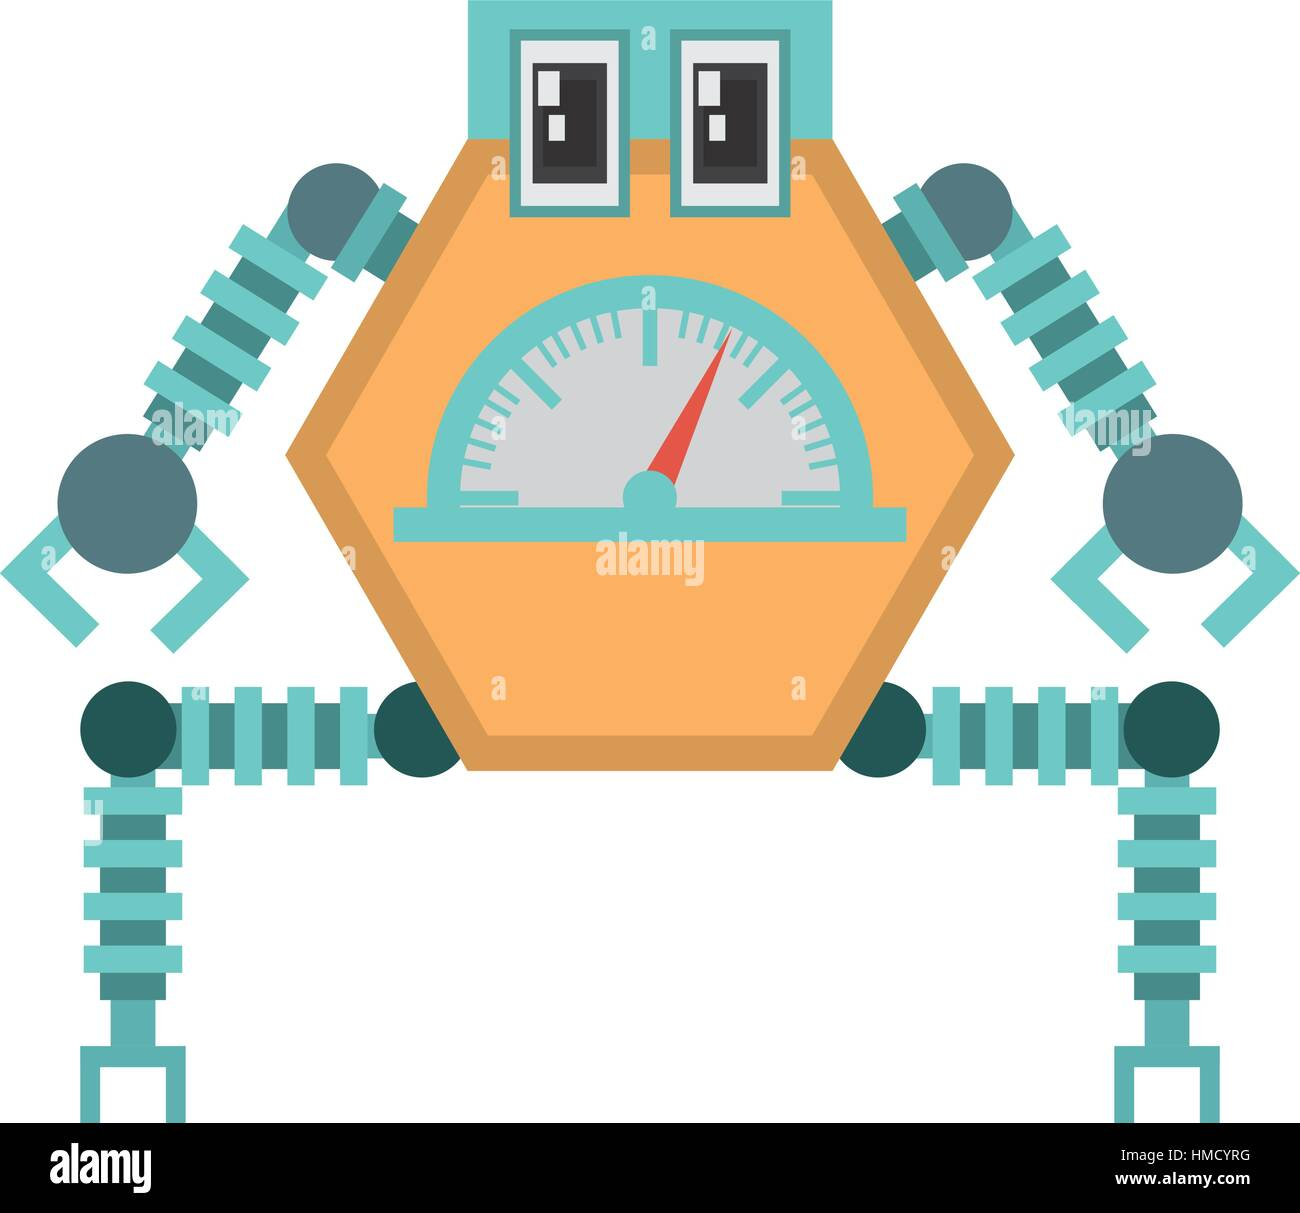 robot multi-task technology pincers arms vector illustration eps 10 - Stock Vector